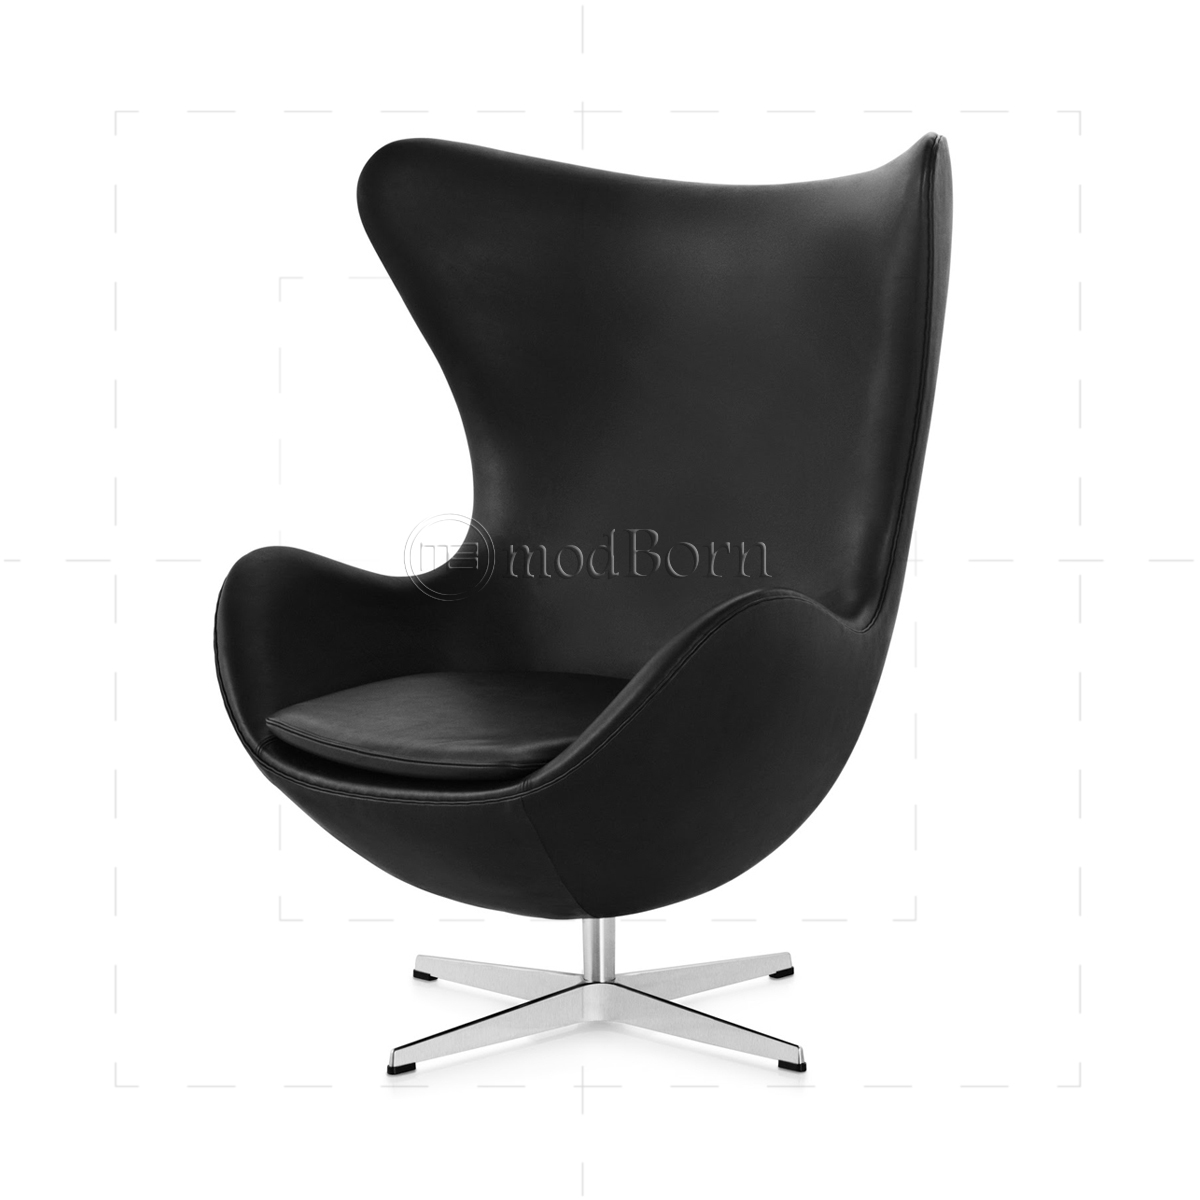 arne jacobsen style egg chair black leather replica. Black Bedroom Furniture Sets. Home Design Ideas